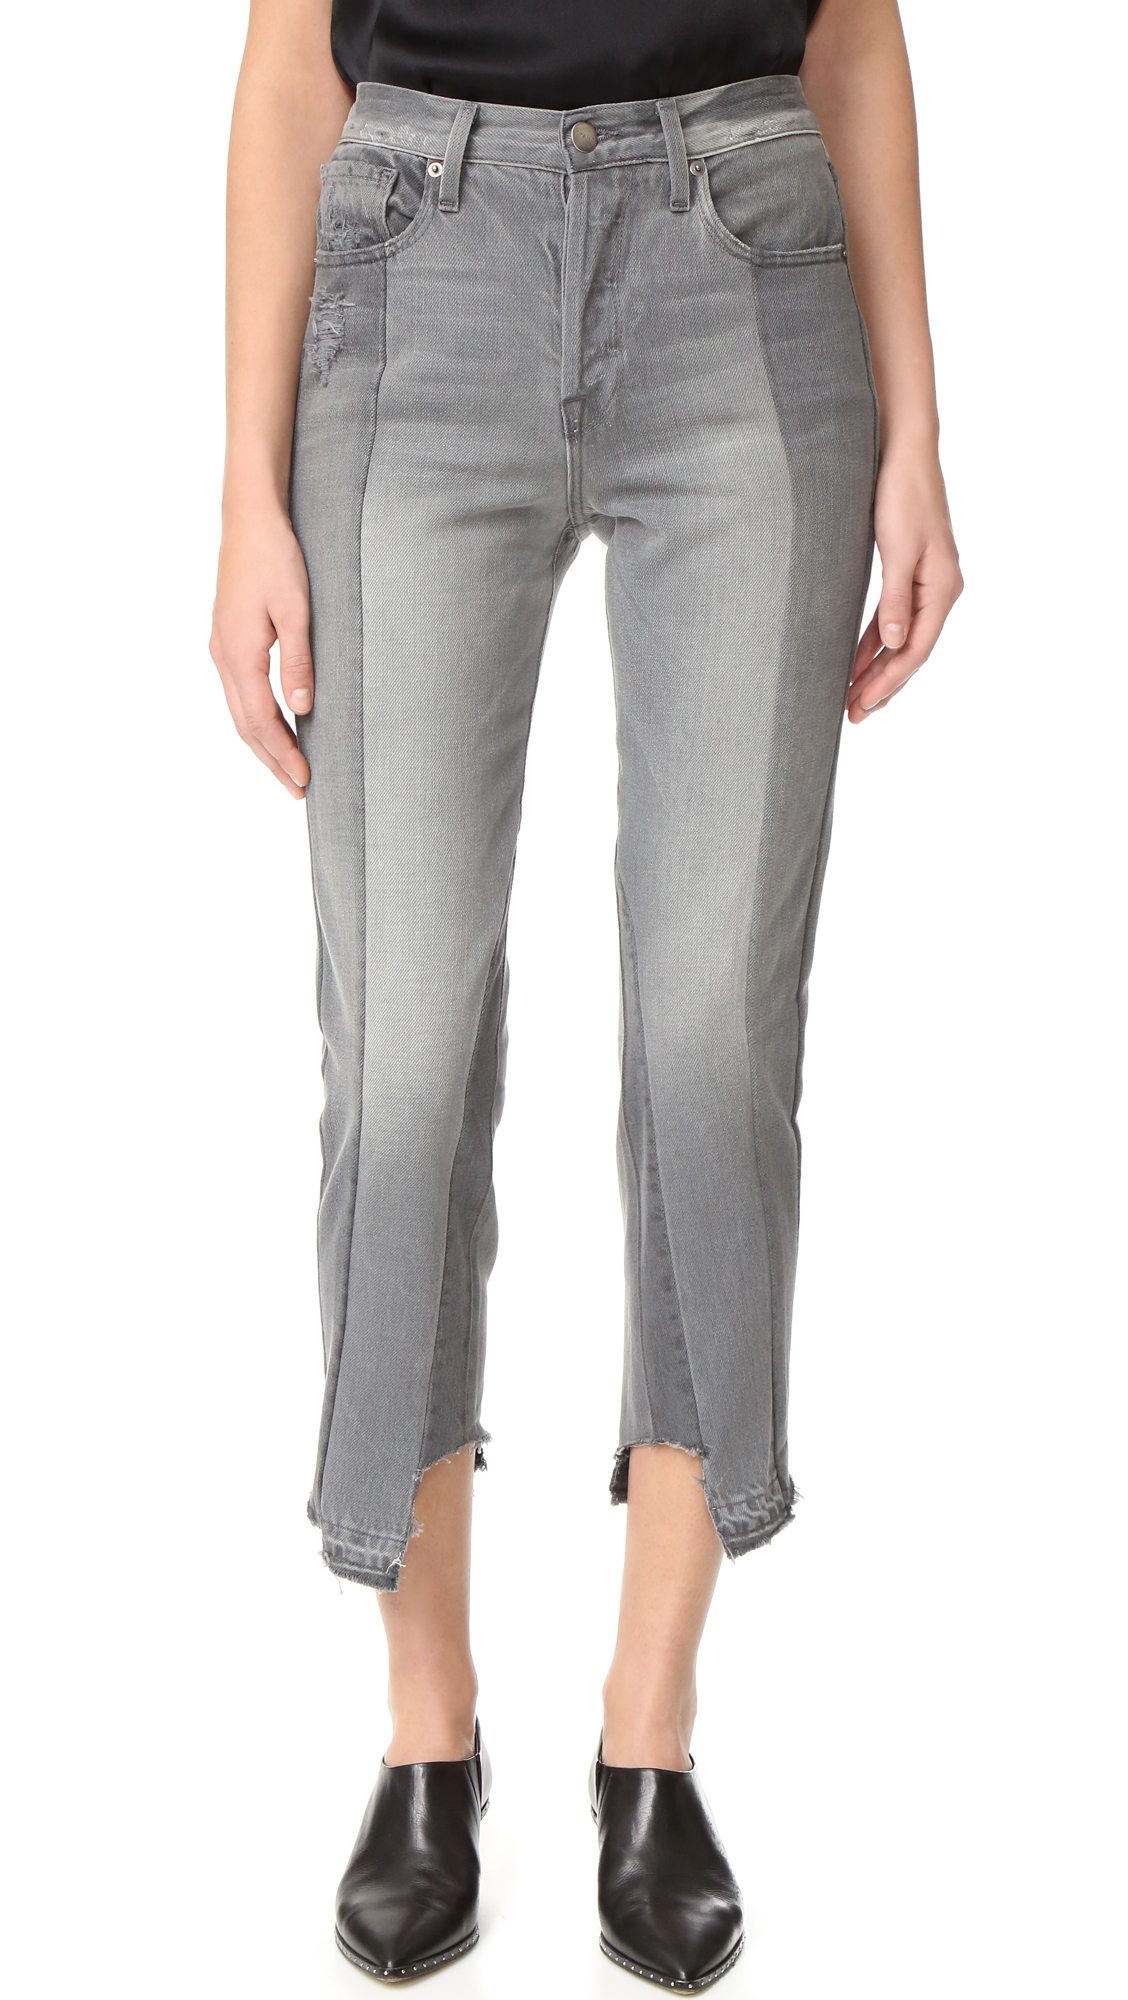 Tonal patchwork composes these cropped FRAME jeans. Frayed cuffs. 5 pocket styling. Button closure and zip fly. Fabric: Denim. 100% cotton. Wash cold. Made in the USA. Measurements Rise: 11in / 28cm Inseam: 26in / 66cm Leg opening: 12.5in / 32cm